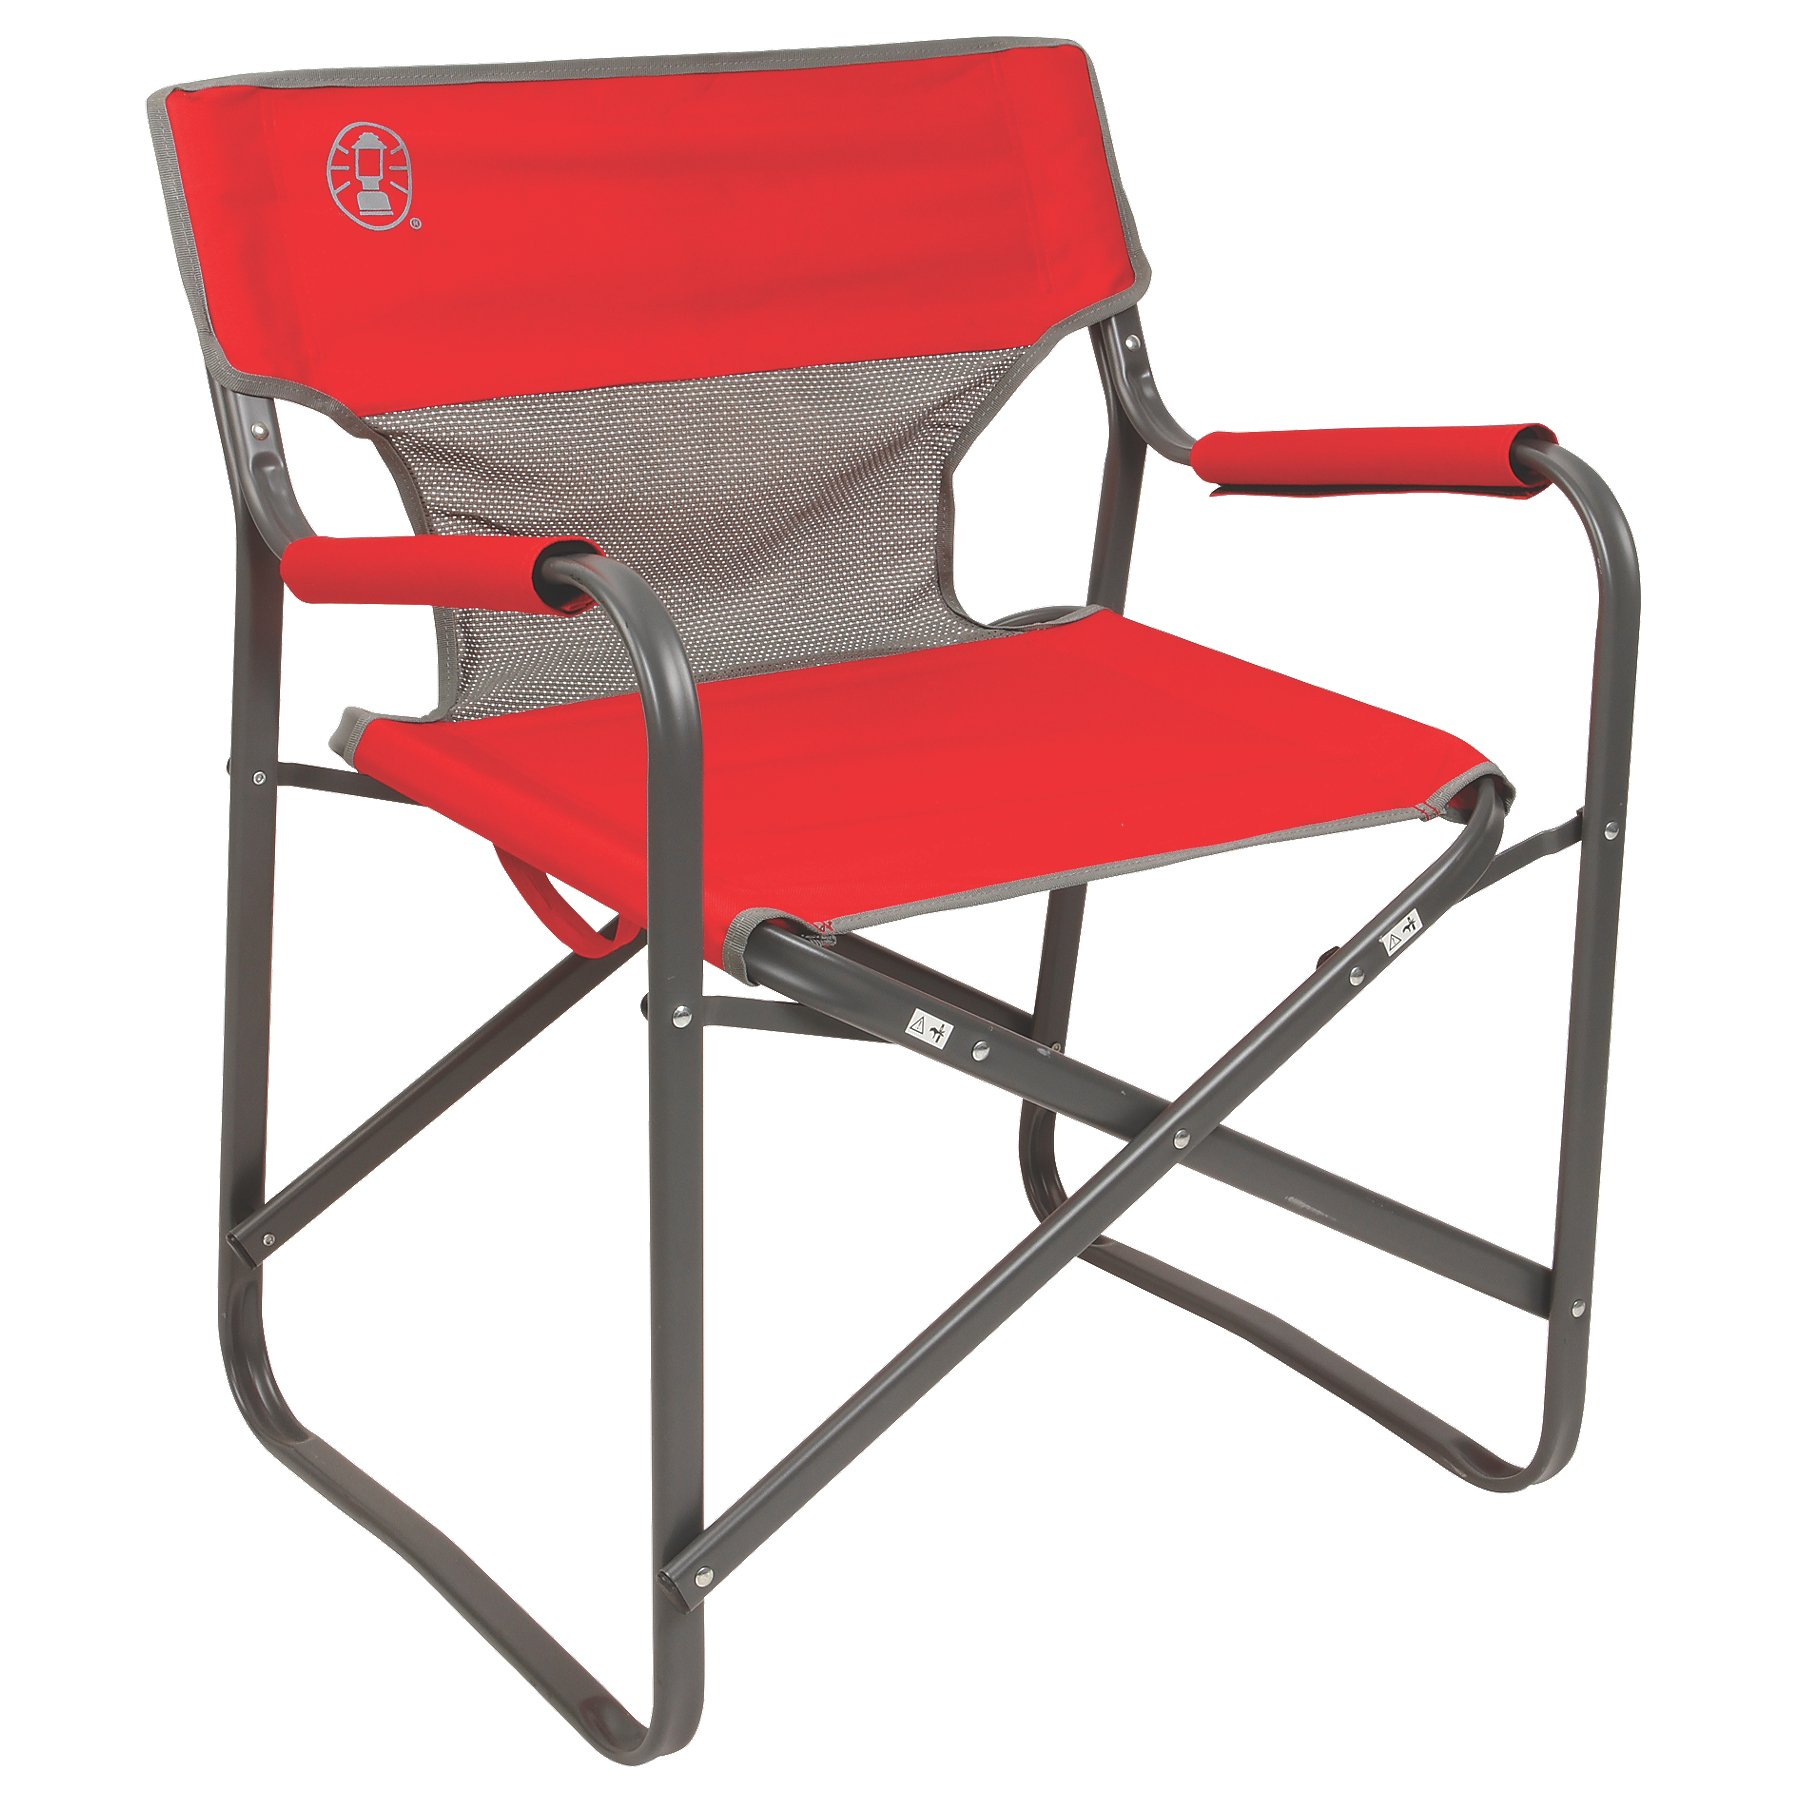 Exceptional Heavy Duty Folding Chair Oversized Camping Outdoor Folding Portable Deck  Yard 1d